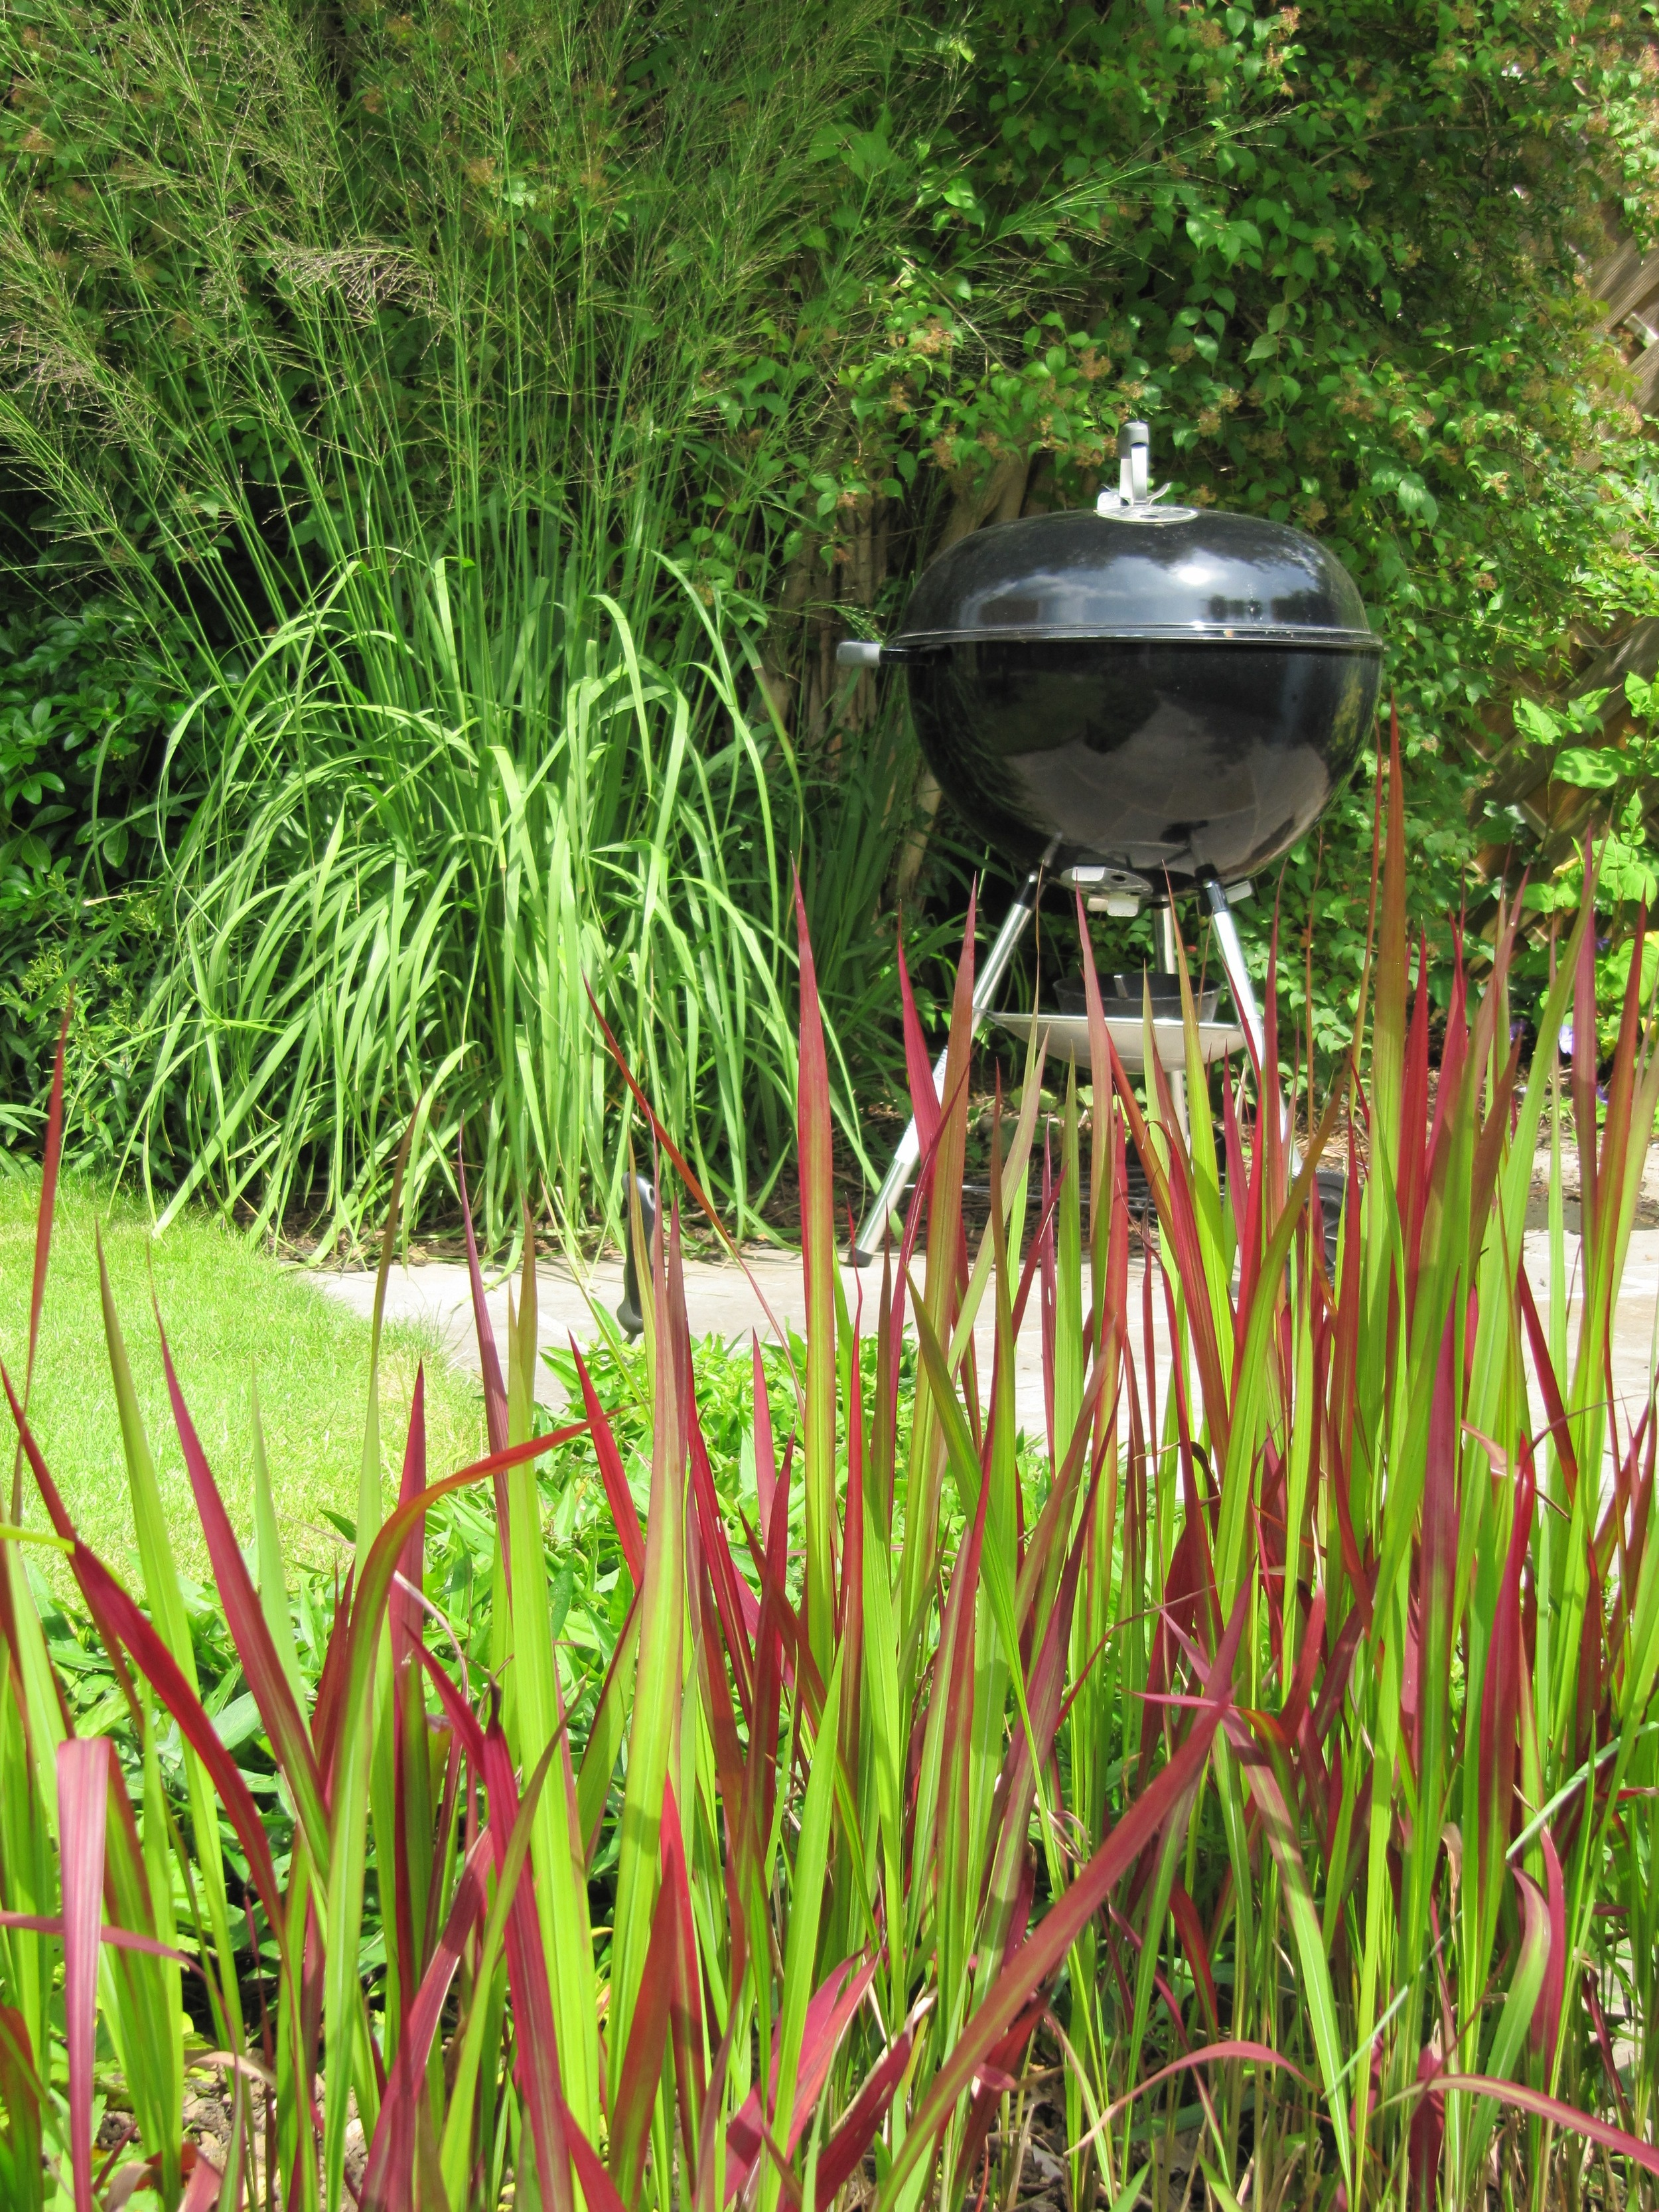 Dramatic grasses, Miscanthus species and Imperata cylindrica give pride of place to a shiny new black barbecue.